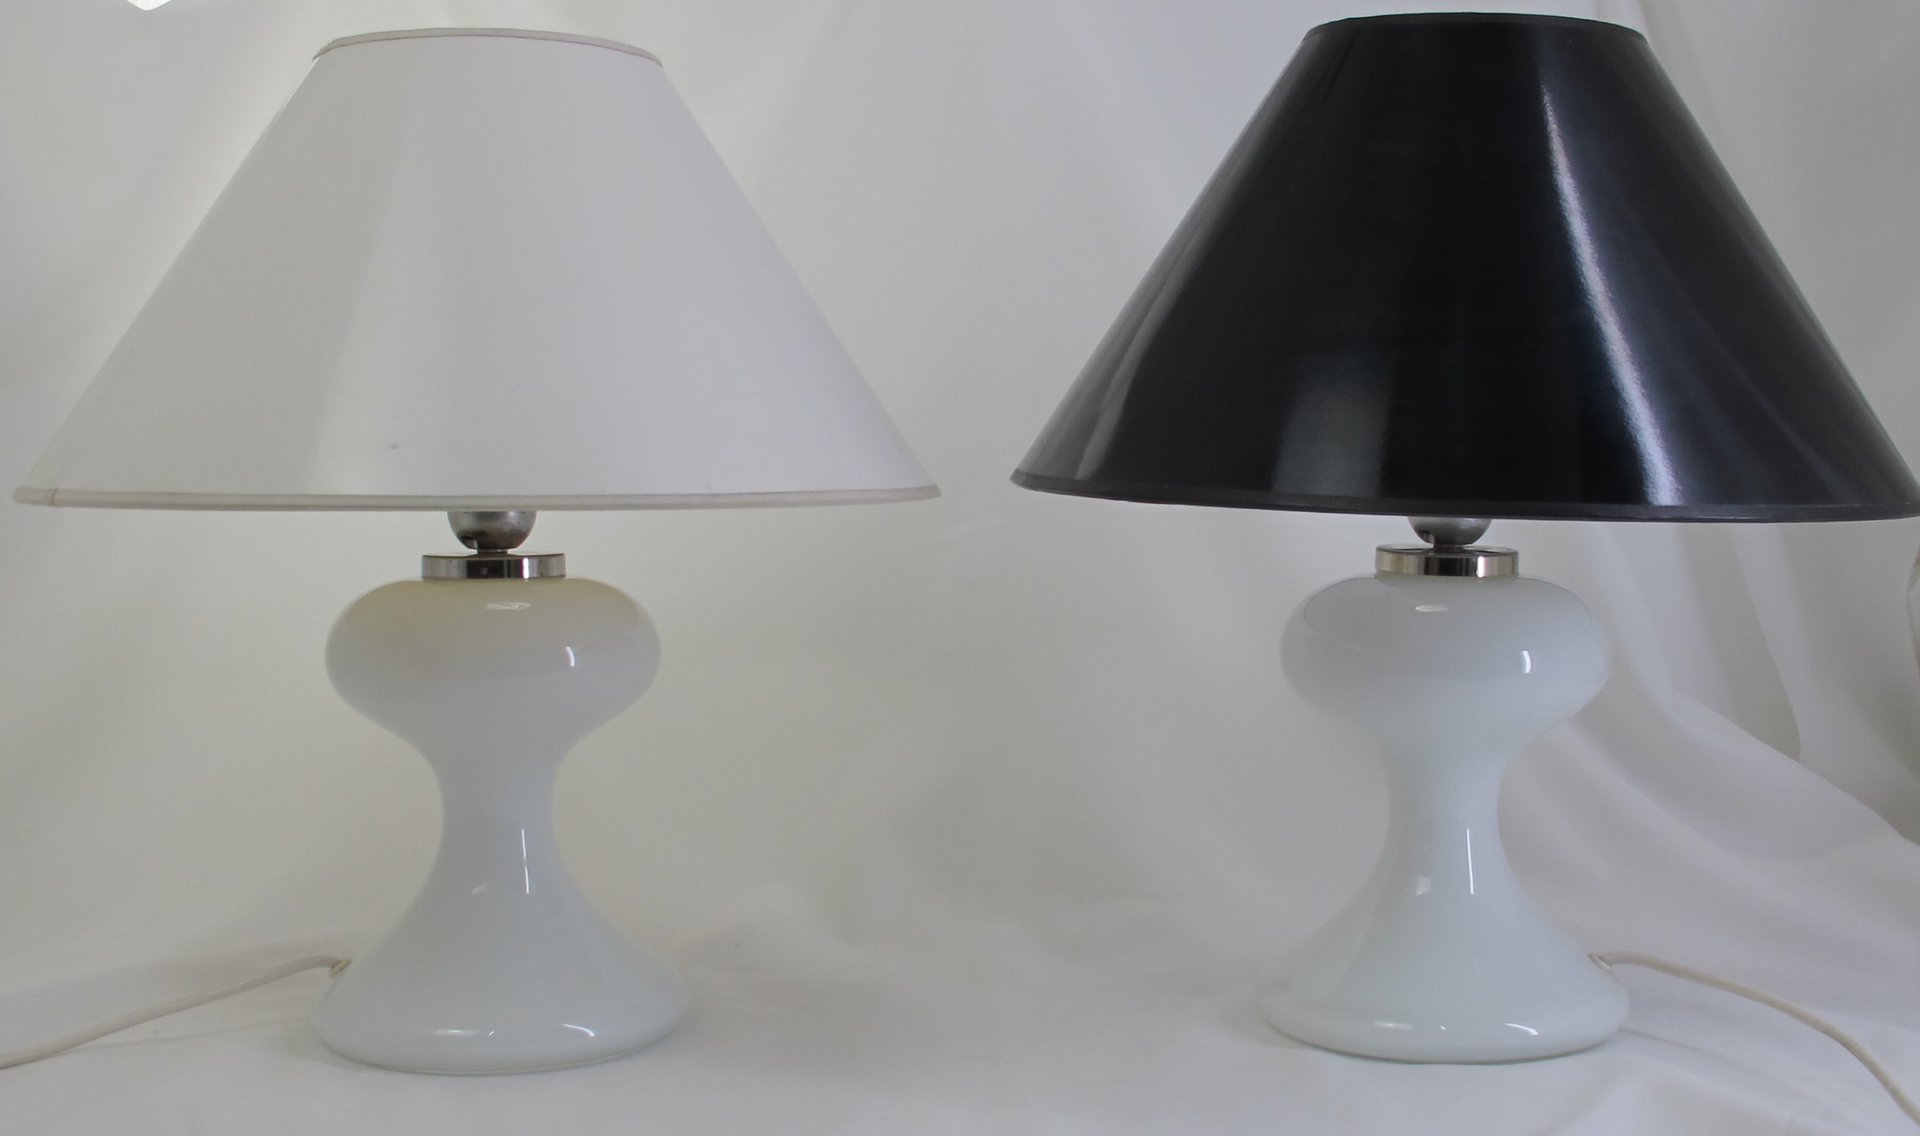 German ml 1 white glass table lamps by ingo maurer 1967 set of 2 german ml 1 white glass table lamps by ingo maurer 1967 set of 2 aloadofball Gallery